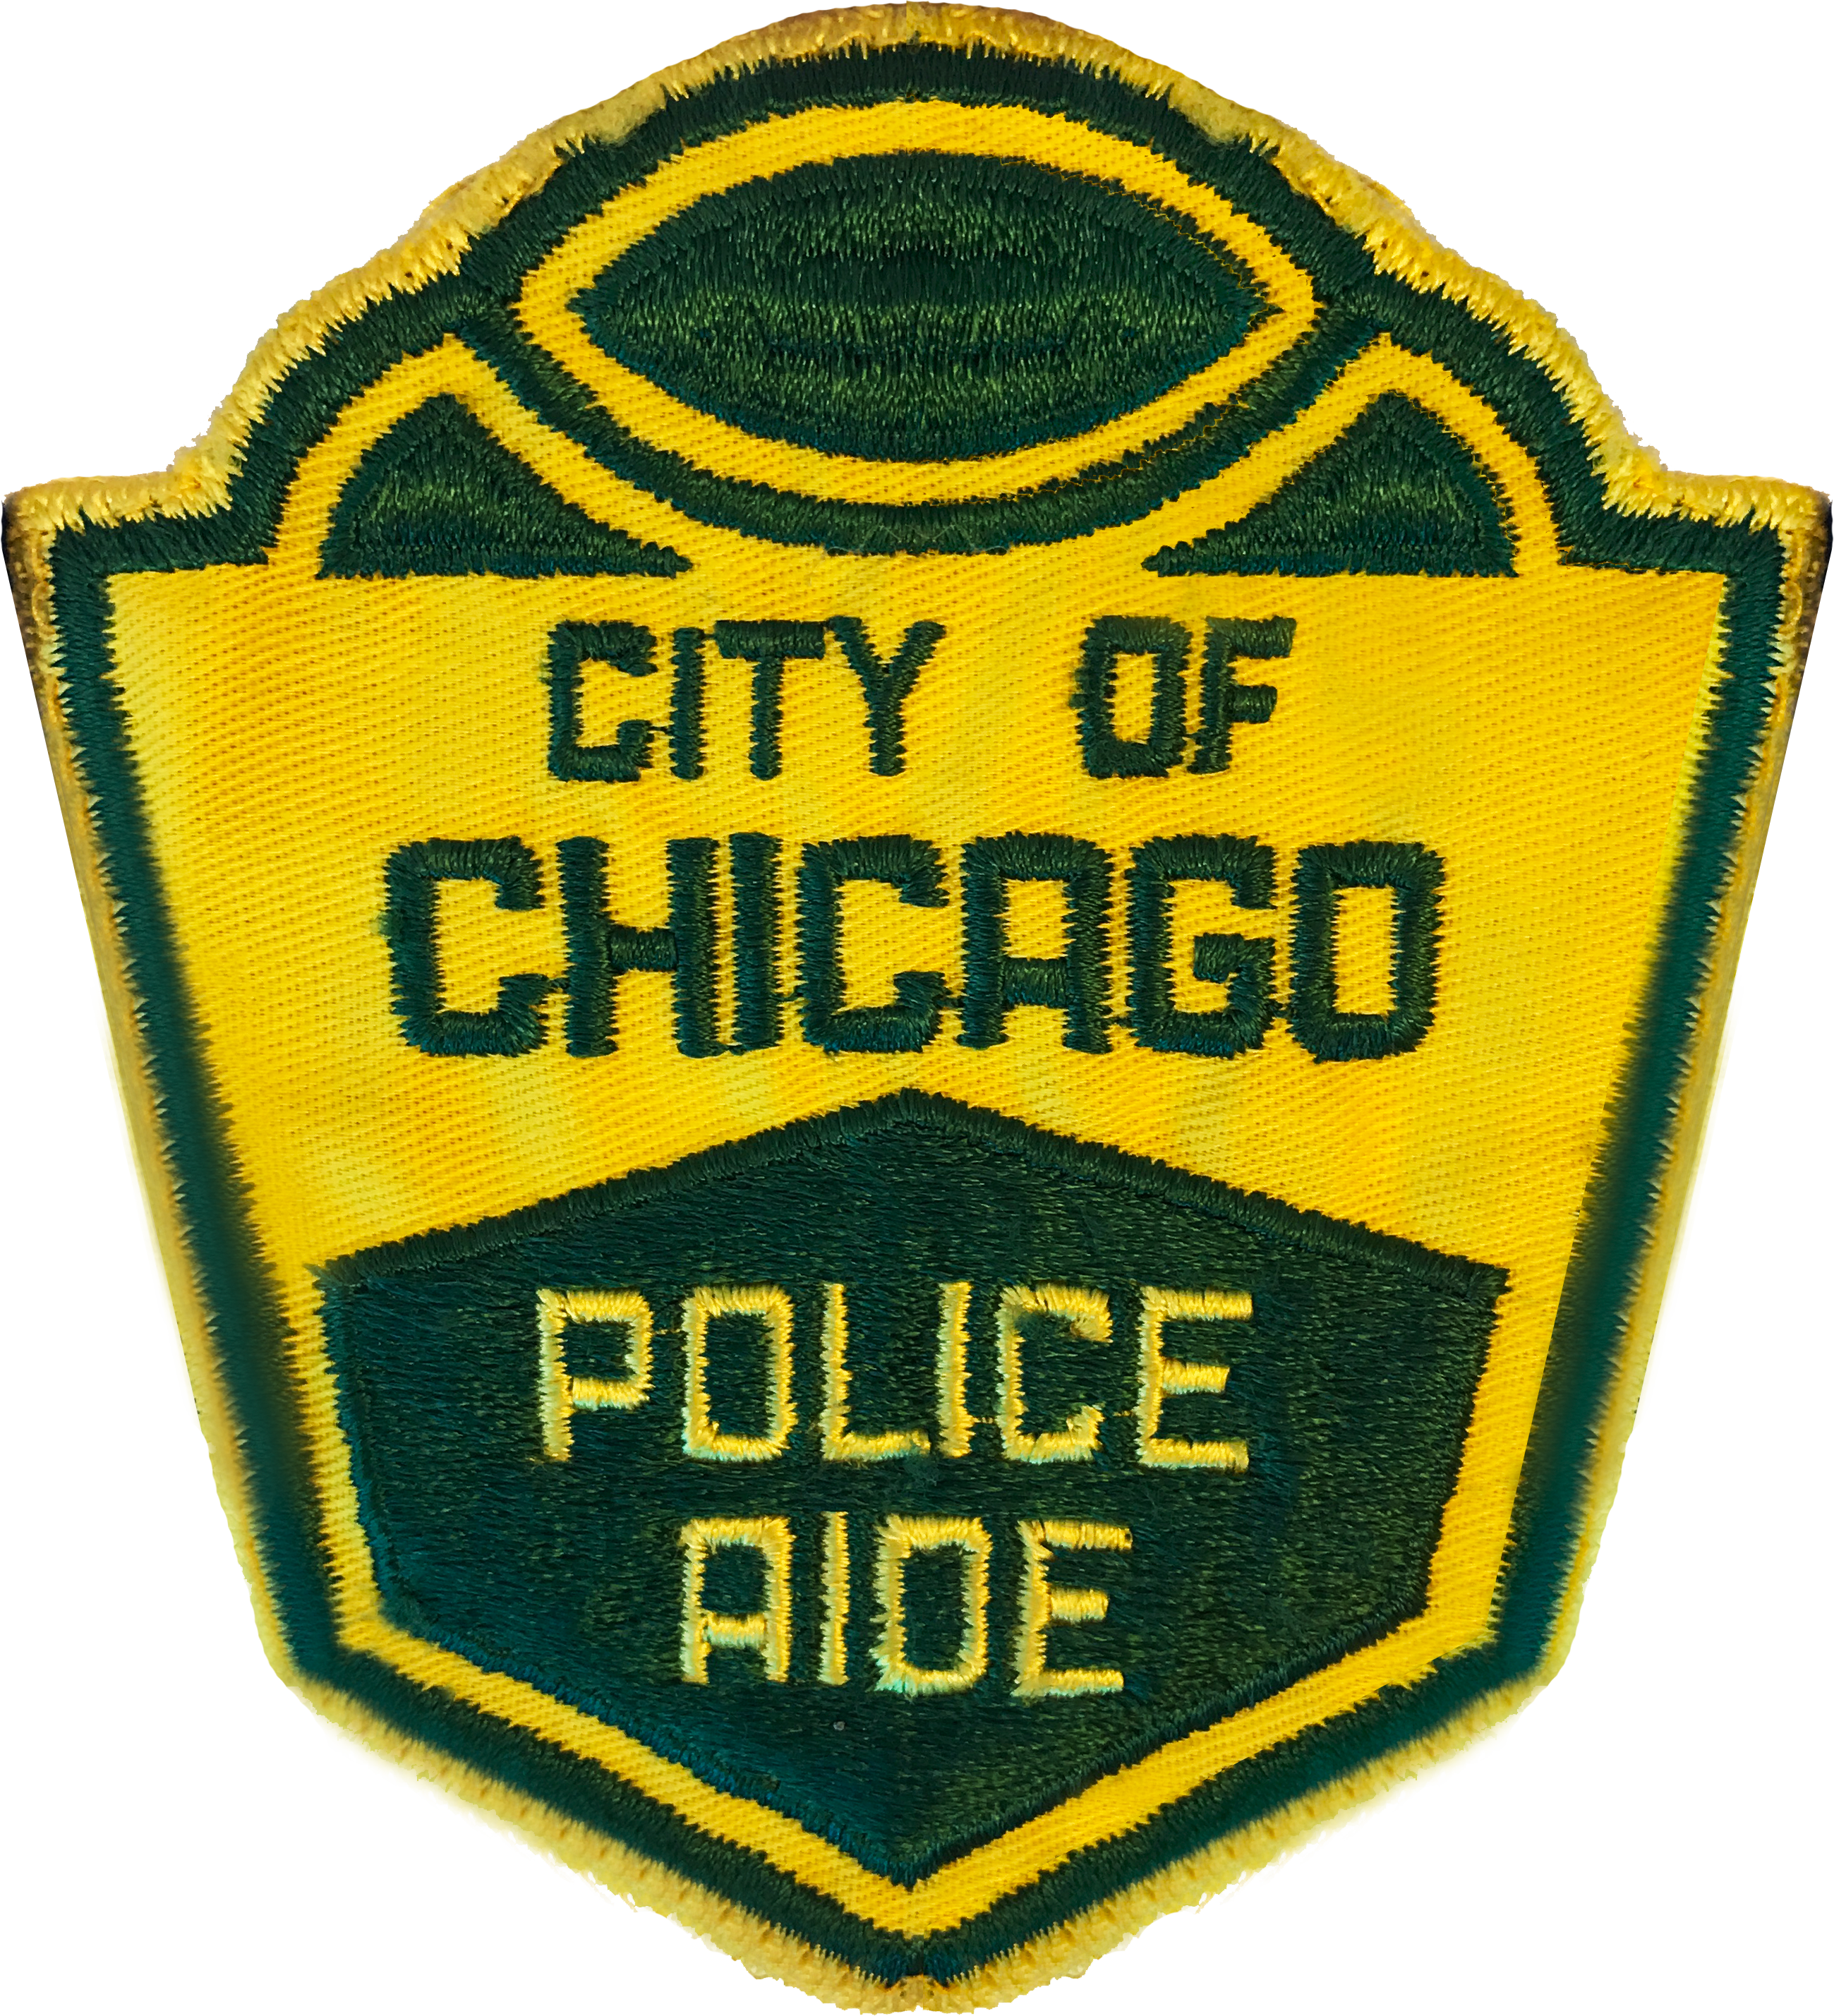 Police Aide Shoulder Patch - 1960's Series